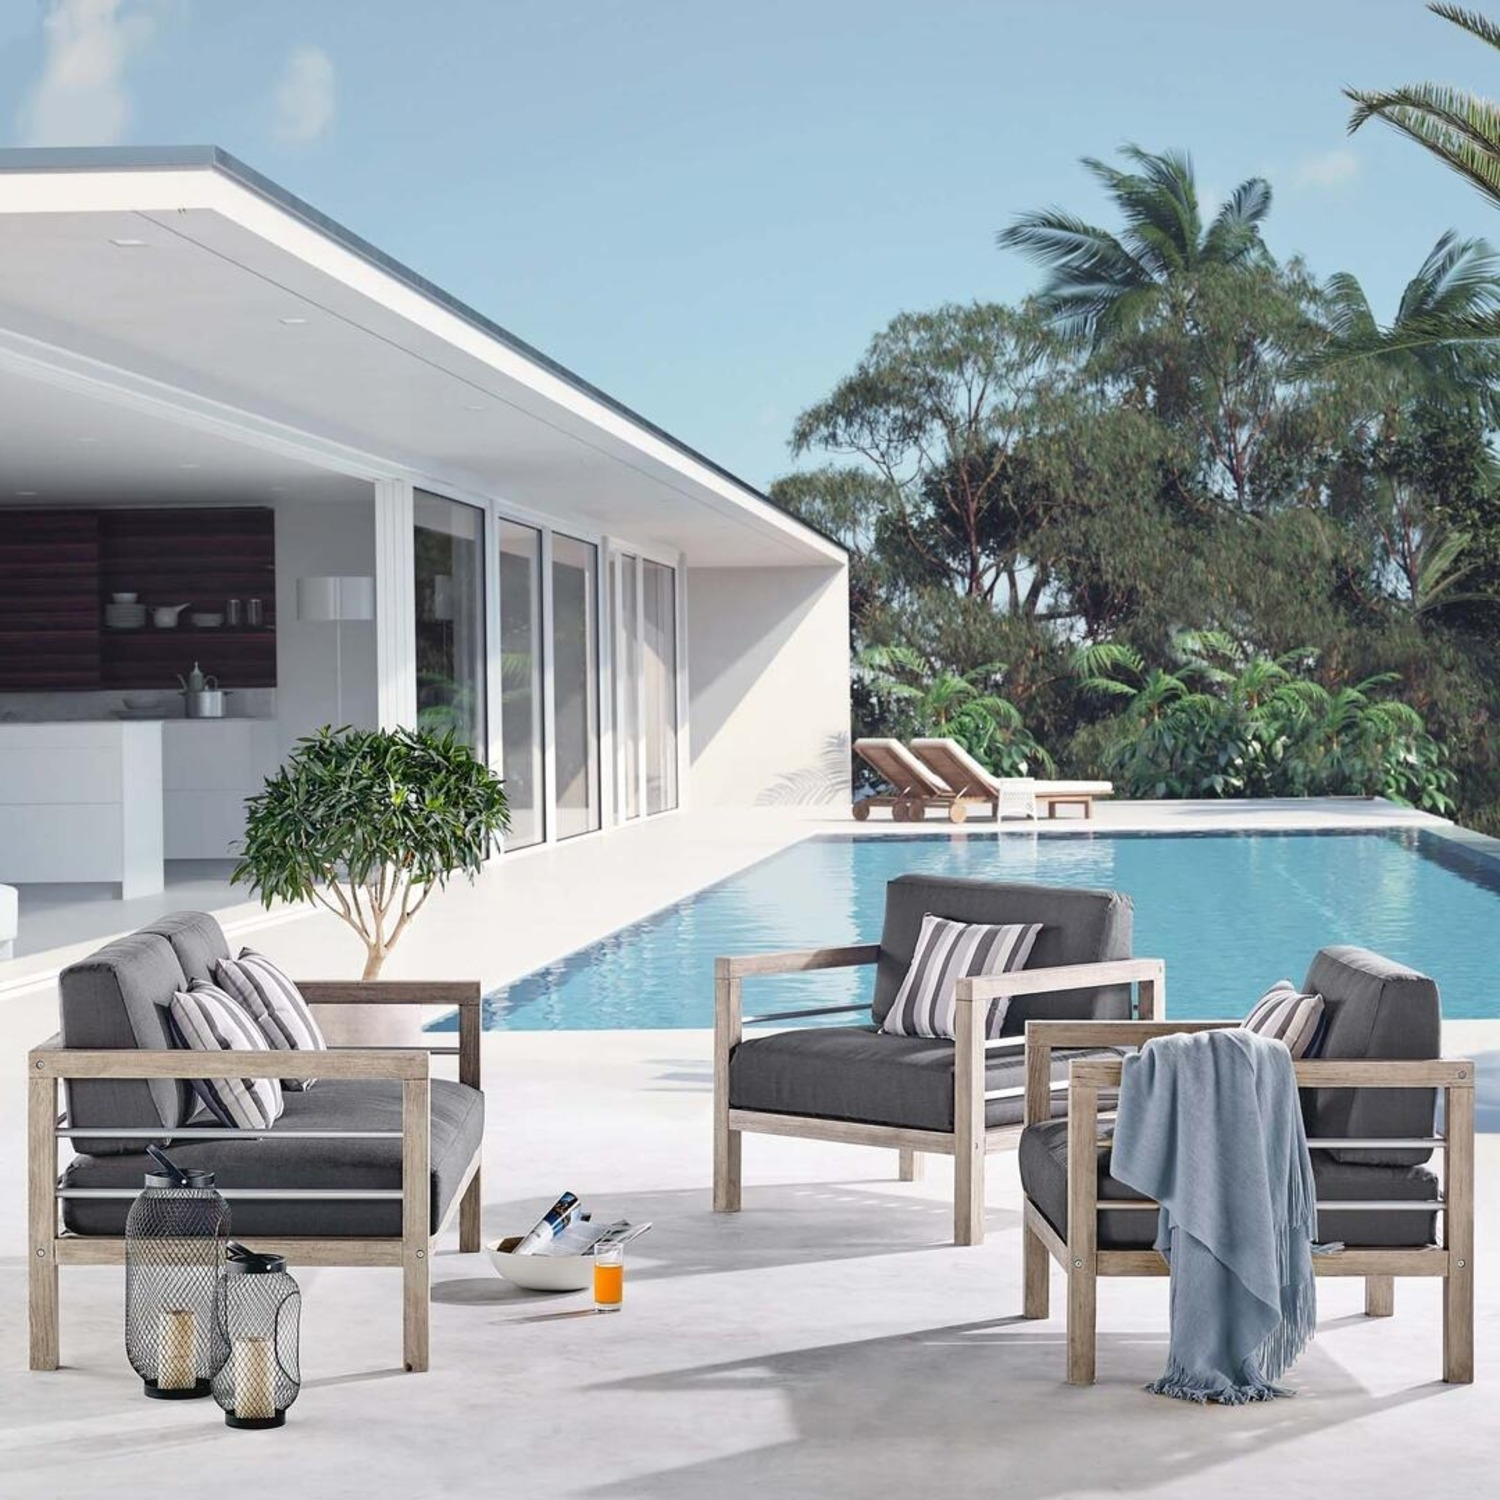 3-Piece Outdoor Patio Set In Light Gray Finish - image-7